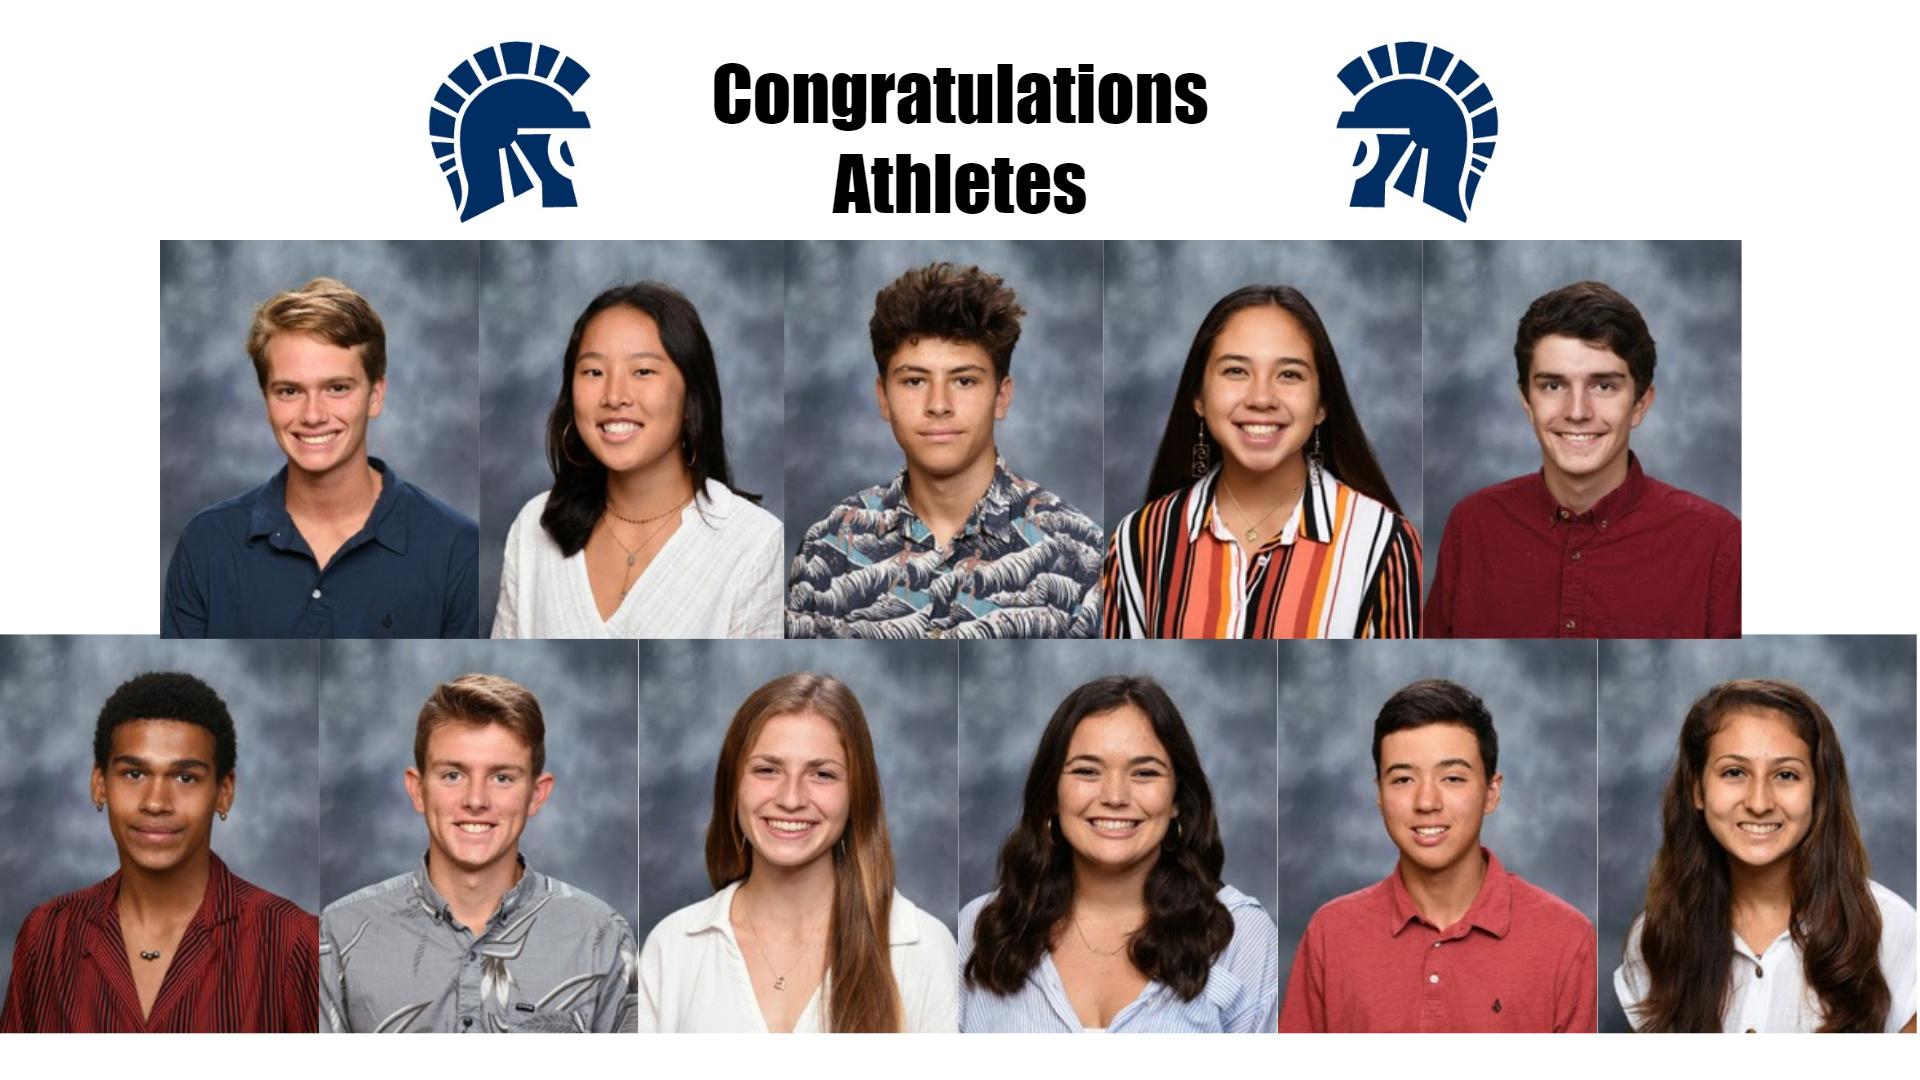 Miles Stone (Tennis), Michelle Tasaki (Tennis), Keala Frost Lopez (Surfing), Lei Ana Bland (Surfing), Parker Almeida (Baseball), Chase Keating (Volleyball), Louie Smith (Track), Sophia Horovitz (Track), Chloe LoGrande (Water Polo), Pierce Dowd (Golf), Kelsie Sparks (Golf)